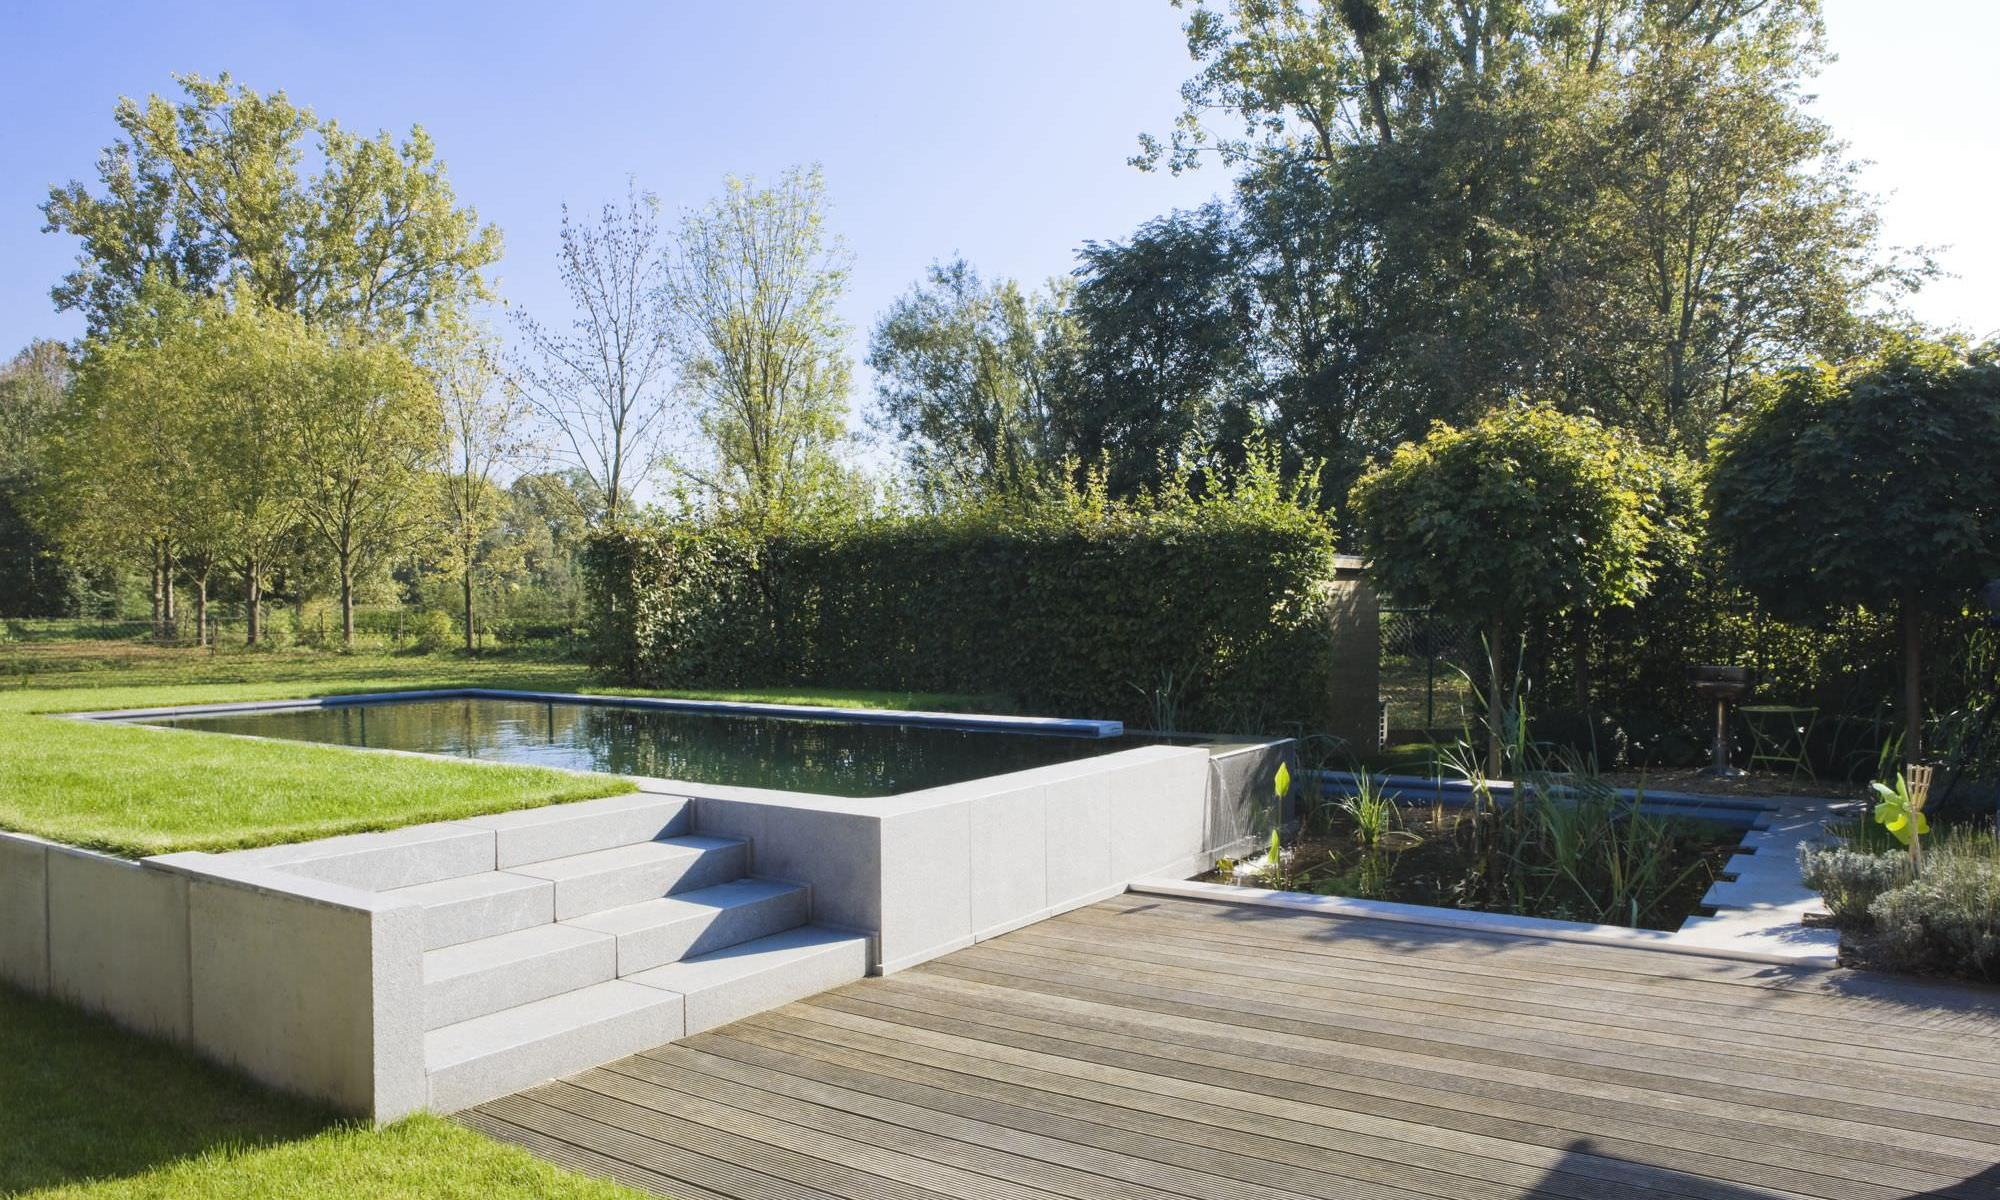 Natural swimming pool from compass compass pools for Garden pool uk